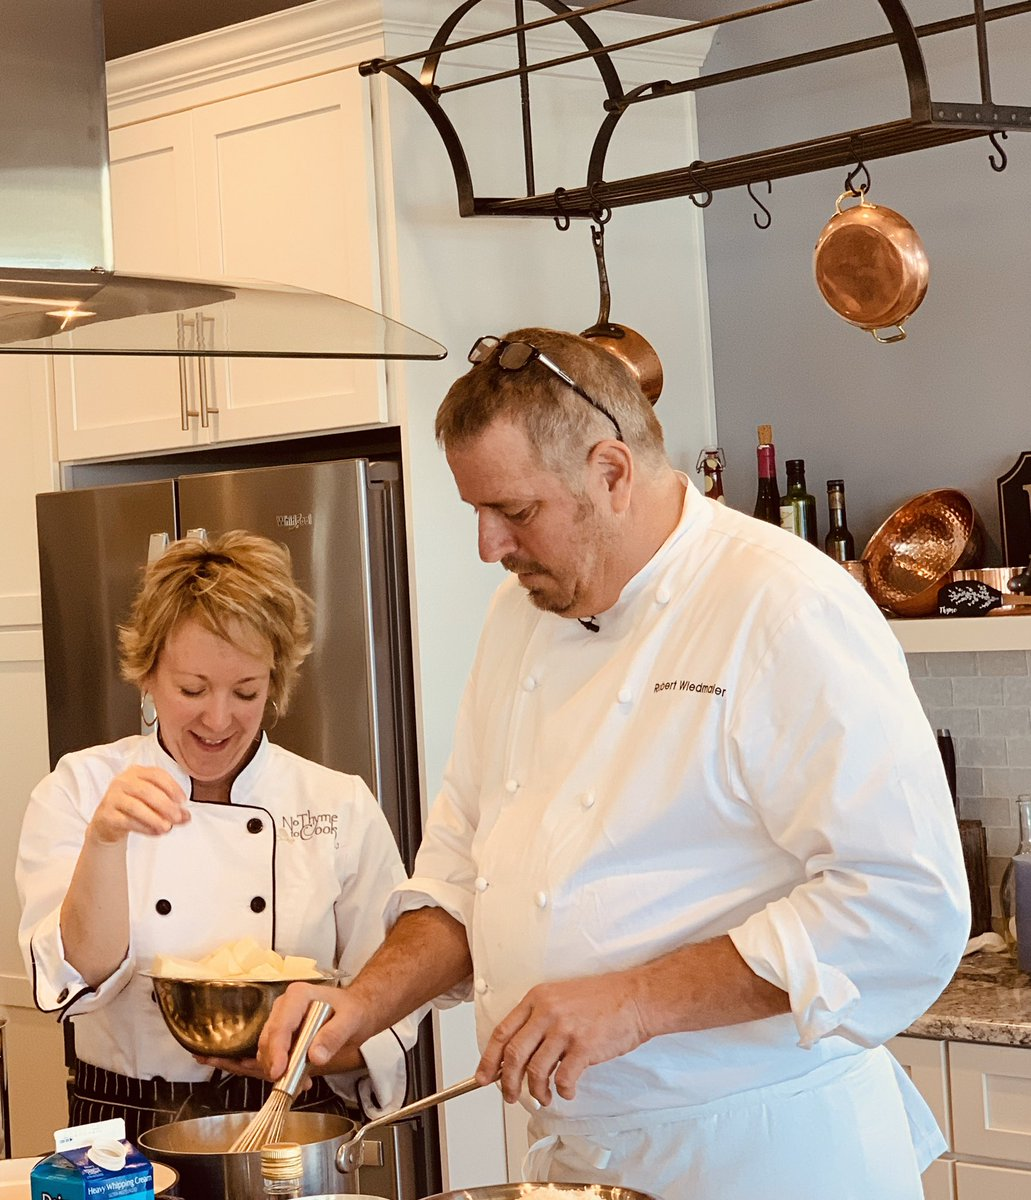 Gorgeous November day with #Michelin Chef Robert Wiedmaier  on #SolomonsIsland - #ChesapeakeBay at cooking school No Thyme To Cook. @rw_restaurant_group @NoThymeToCook https://t.co/qQHQ1xFCNA